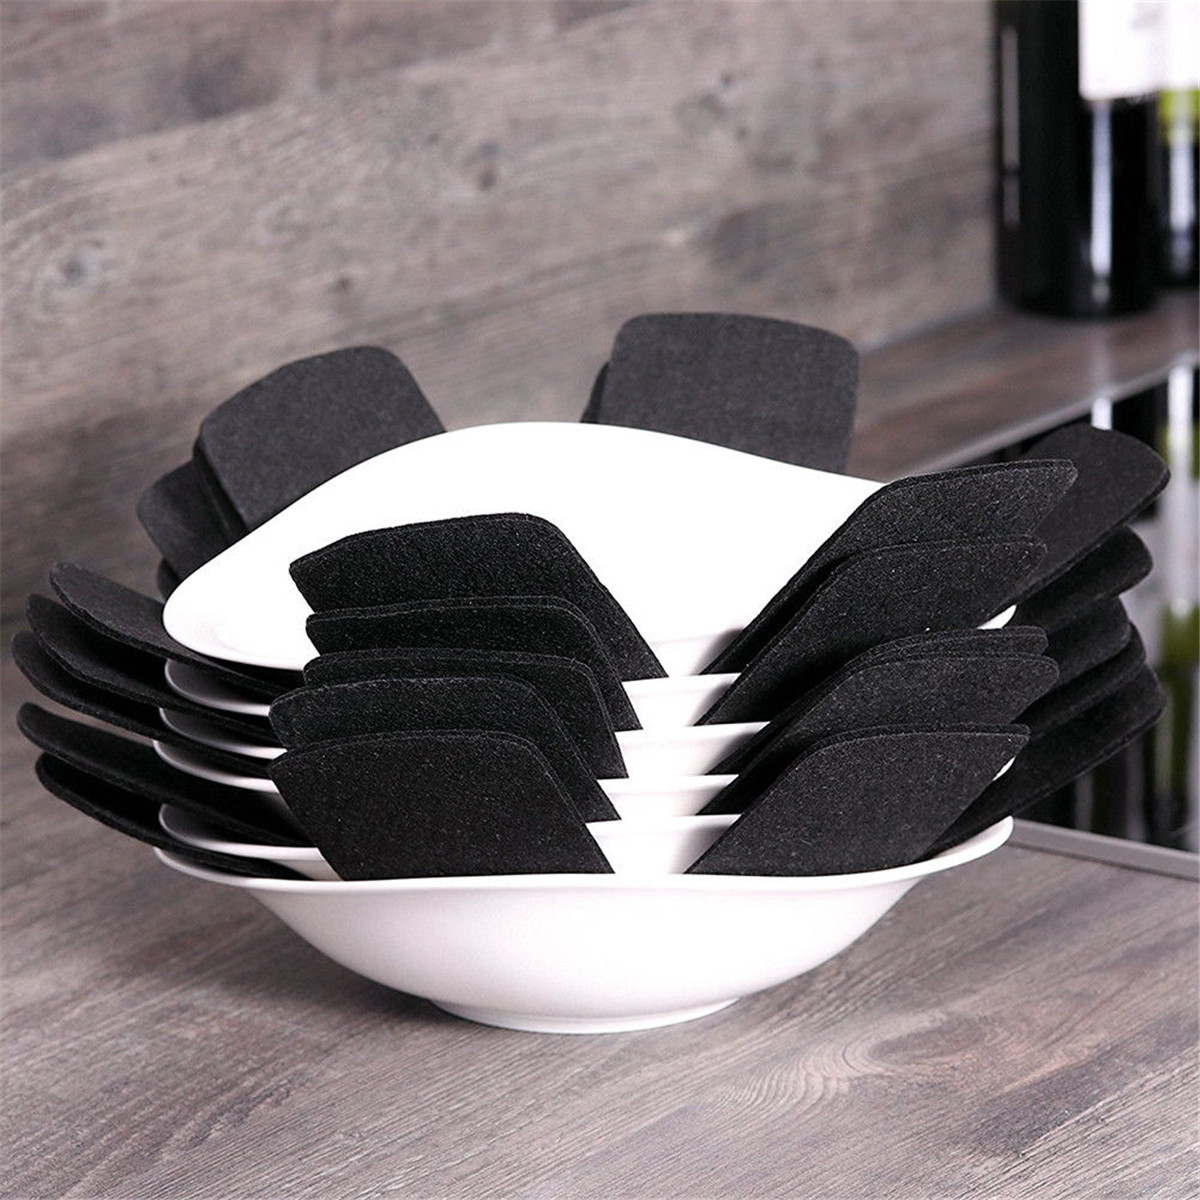 8Pcs Pot Pan Separator Protector Preserves Non Stick Cooking Surface Placemat 32/38/42cm